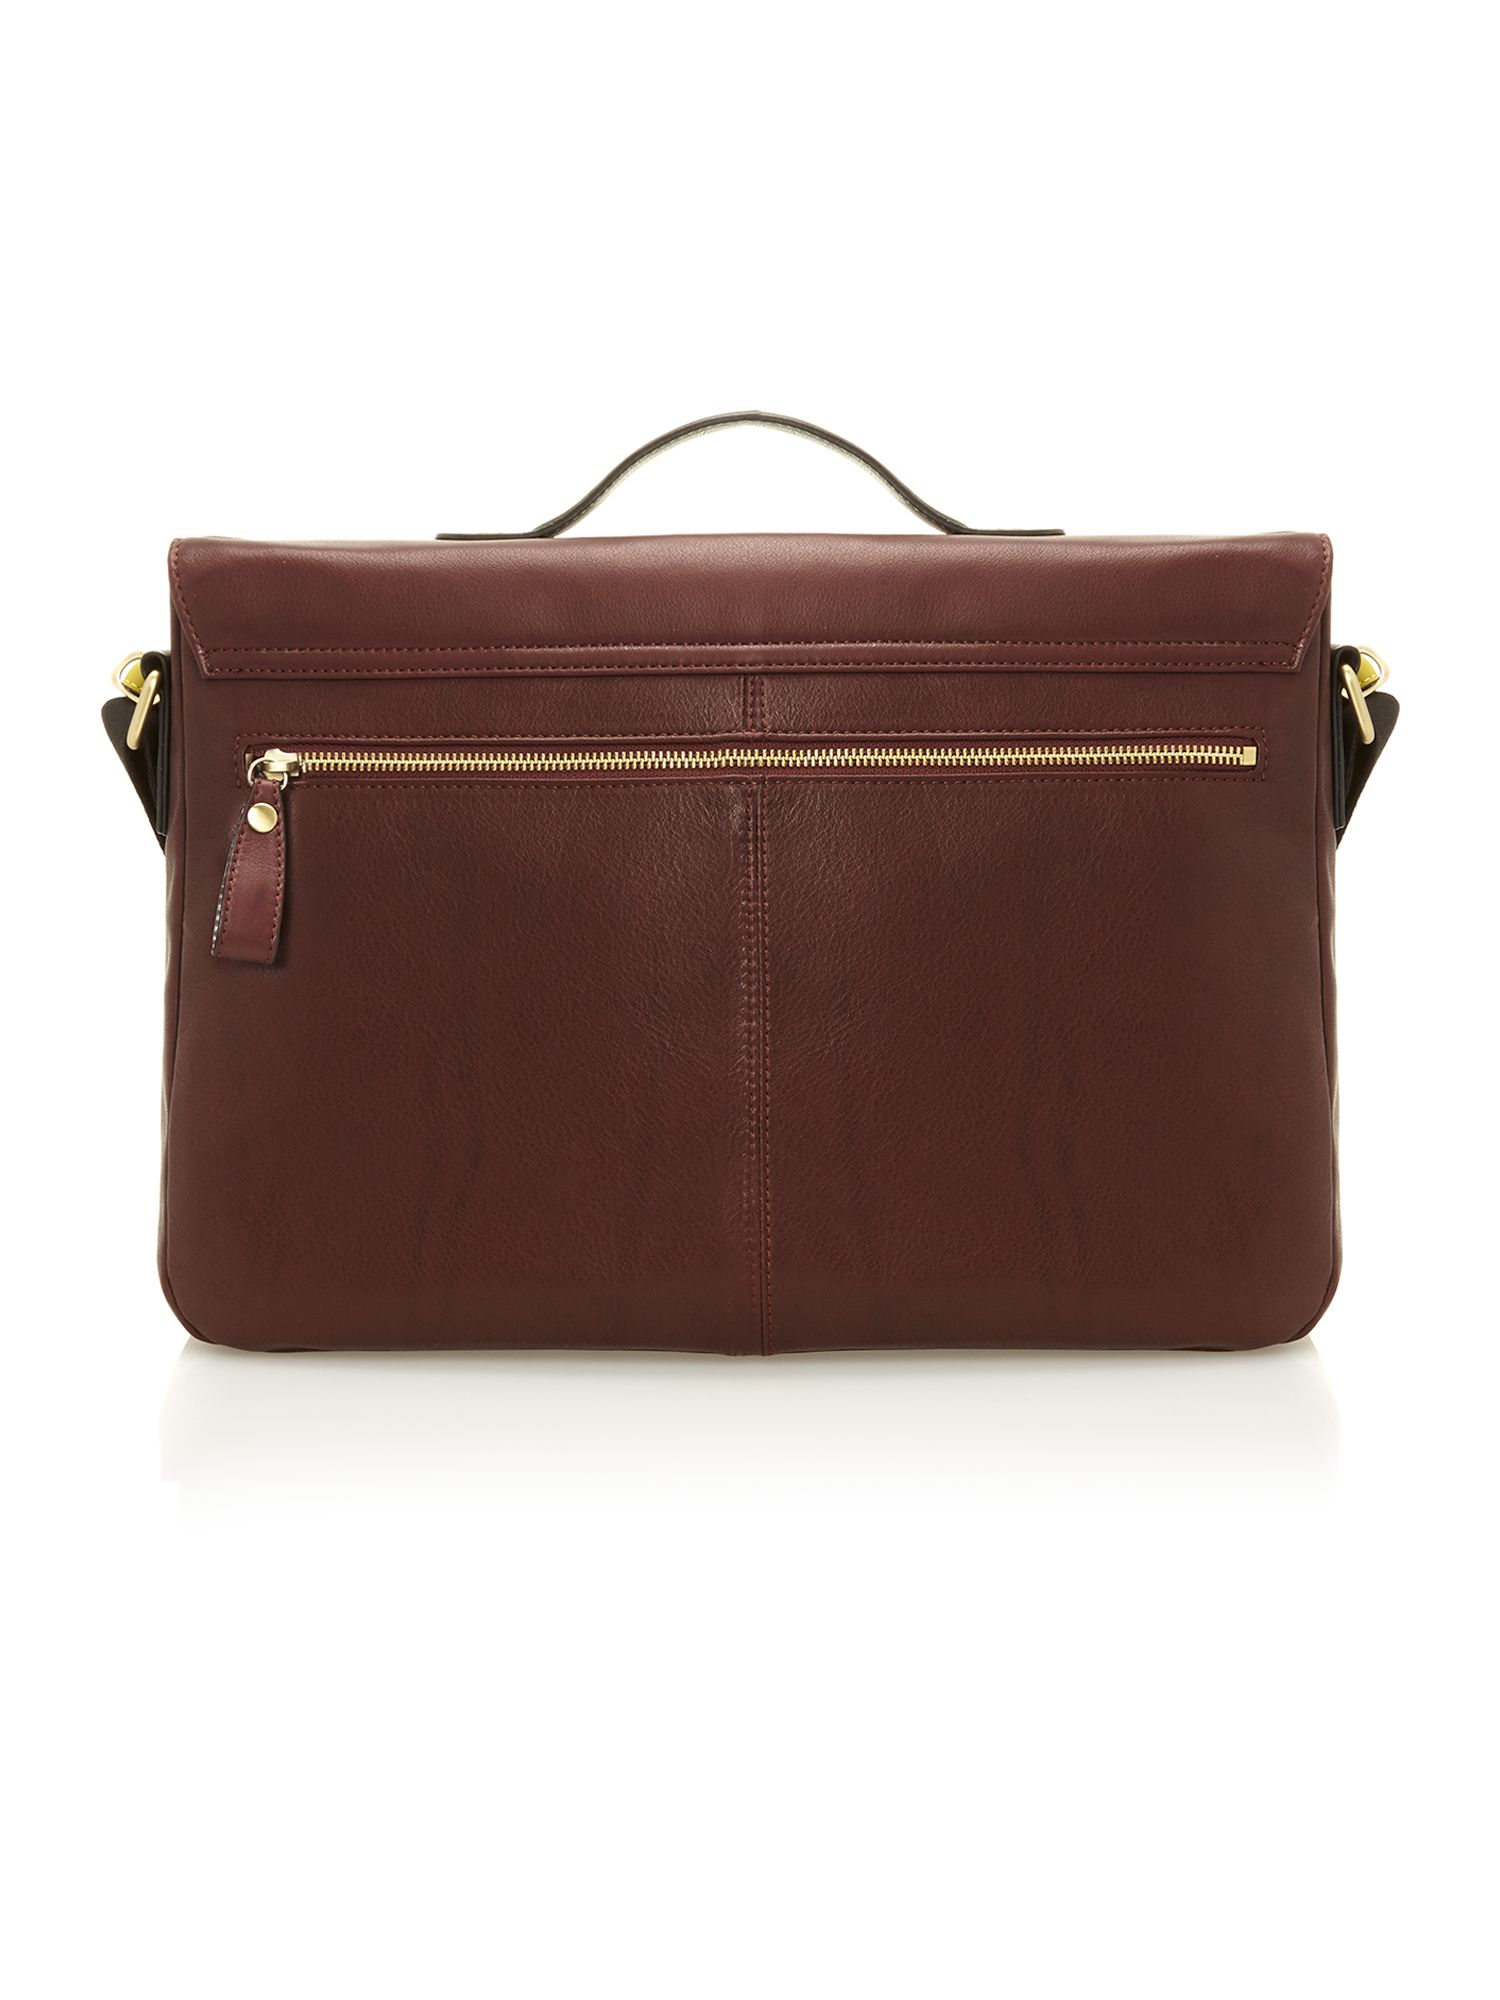 Contrast leather messenger bag